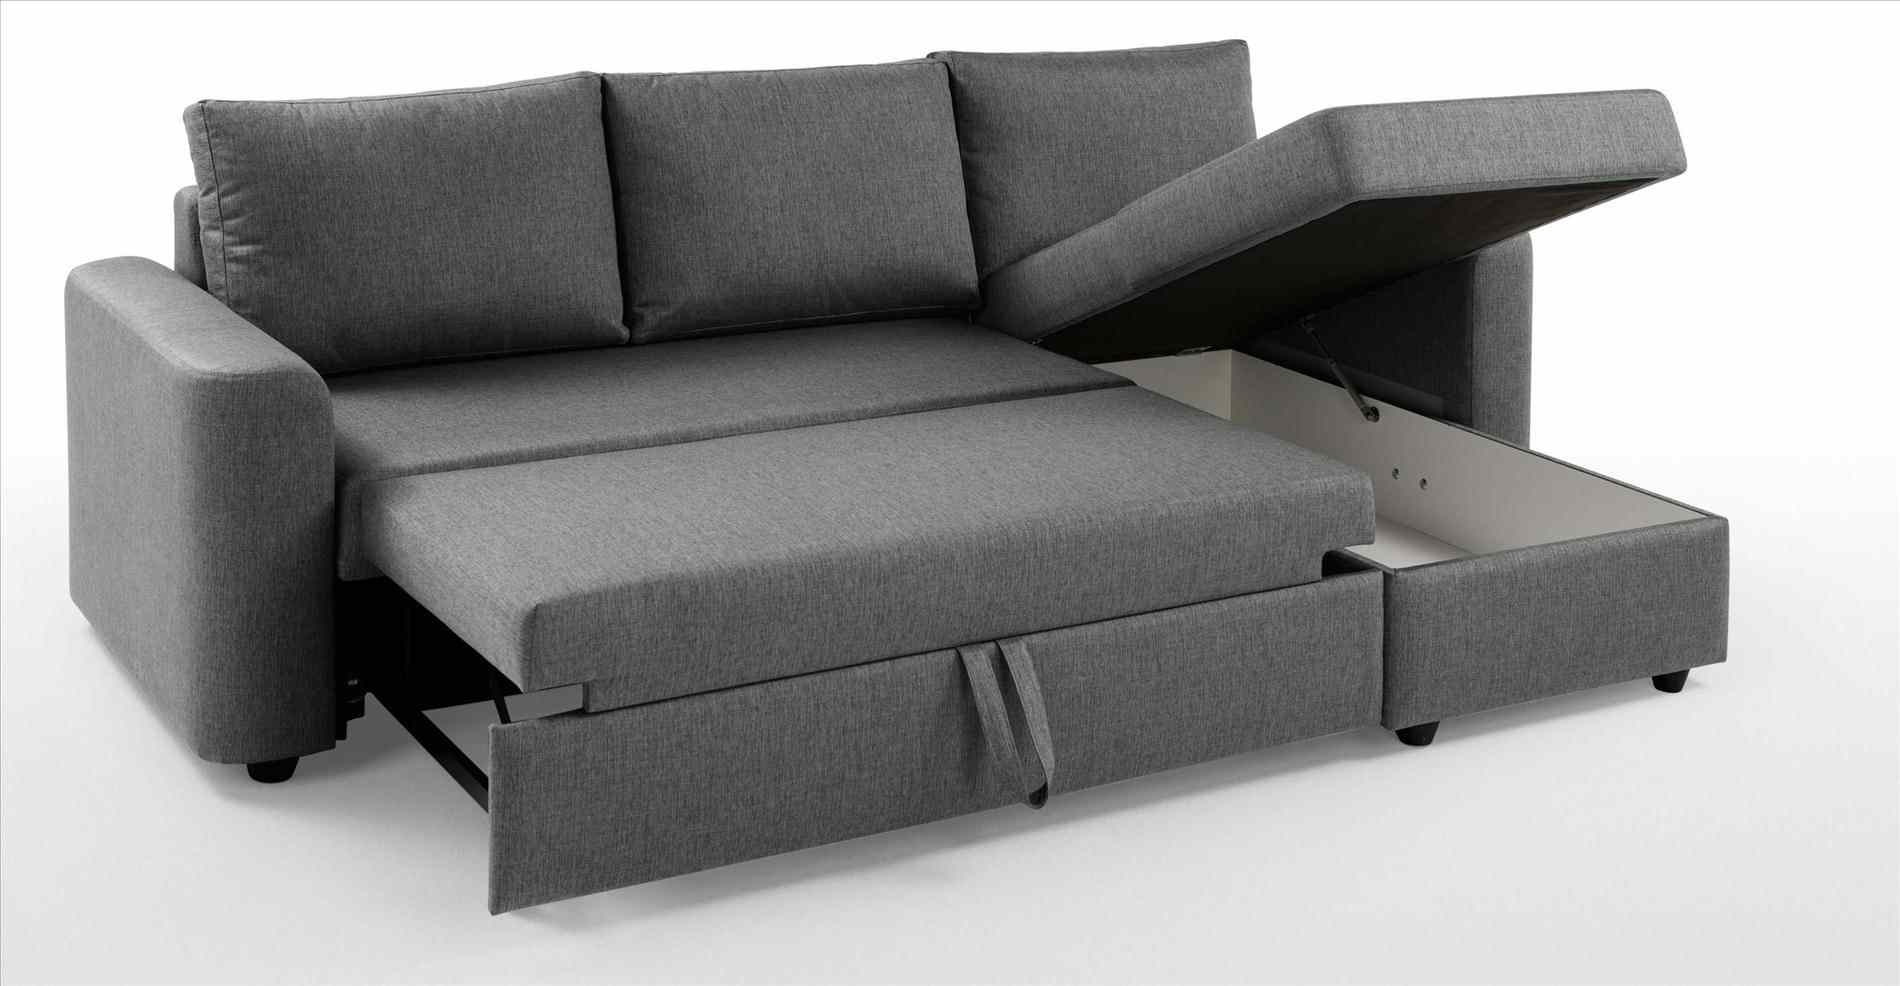 Sofa : Friheten Storage Sofa Bed Corner With Skiftebo Dark Gray Ikea In Sectional Sofas In Philippines (Image 7 of 10)